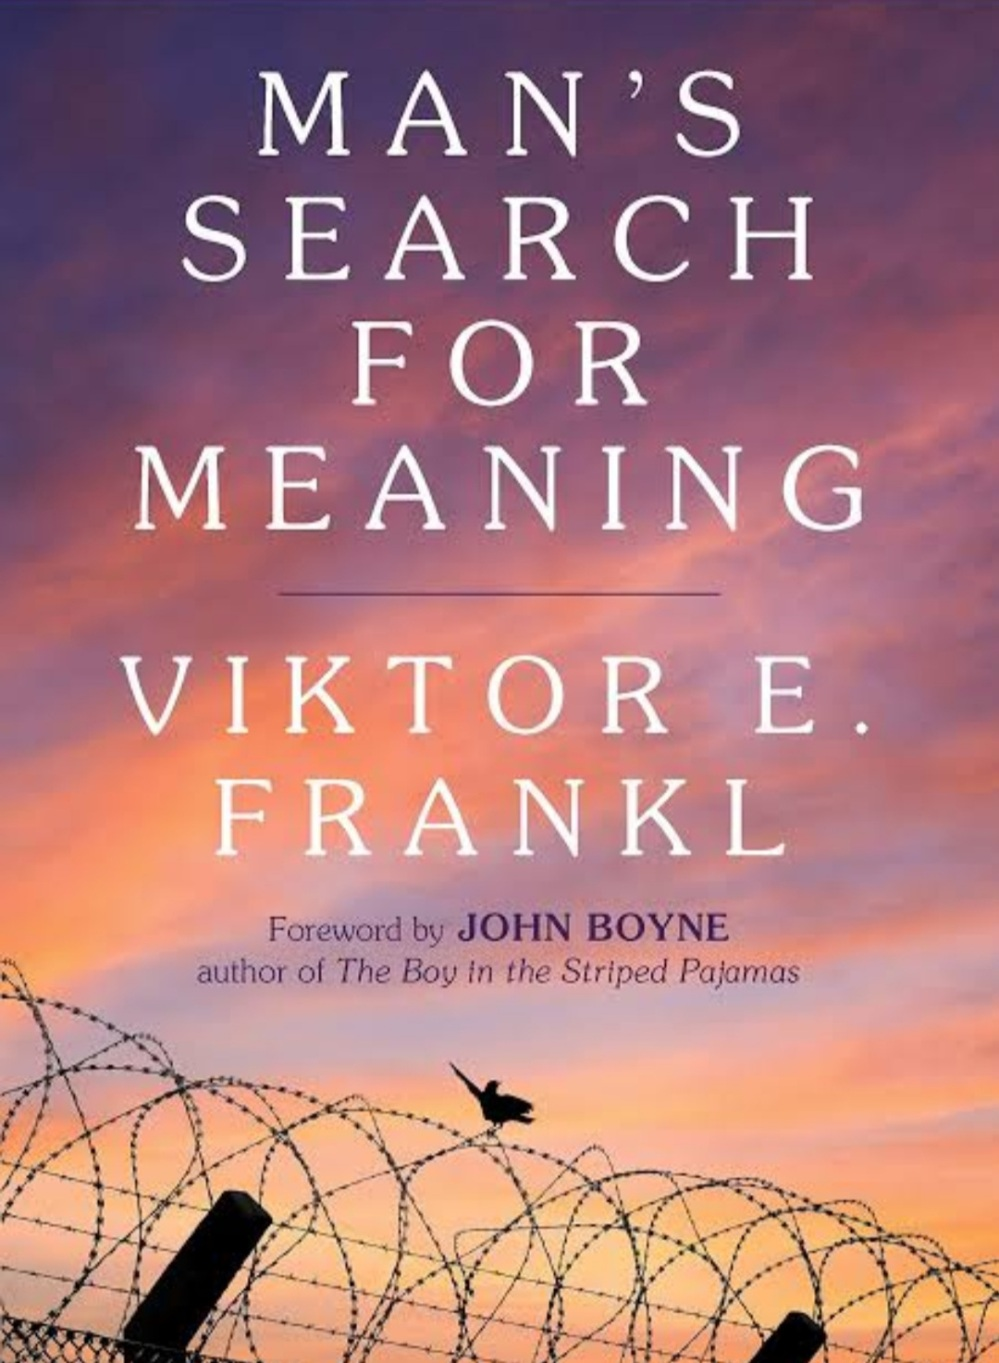 Man's search for meaning by Viktor E Frankl cover